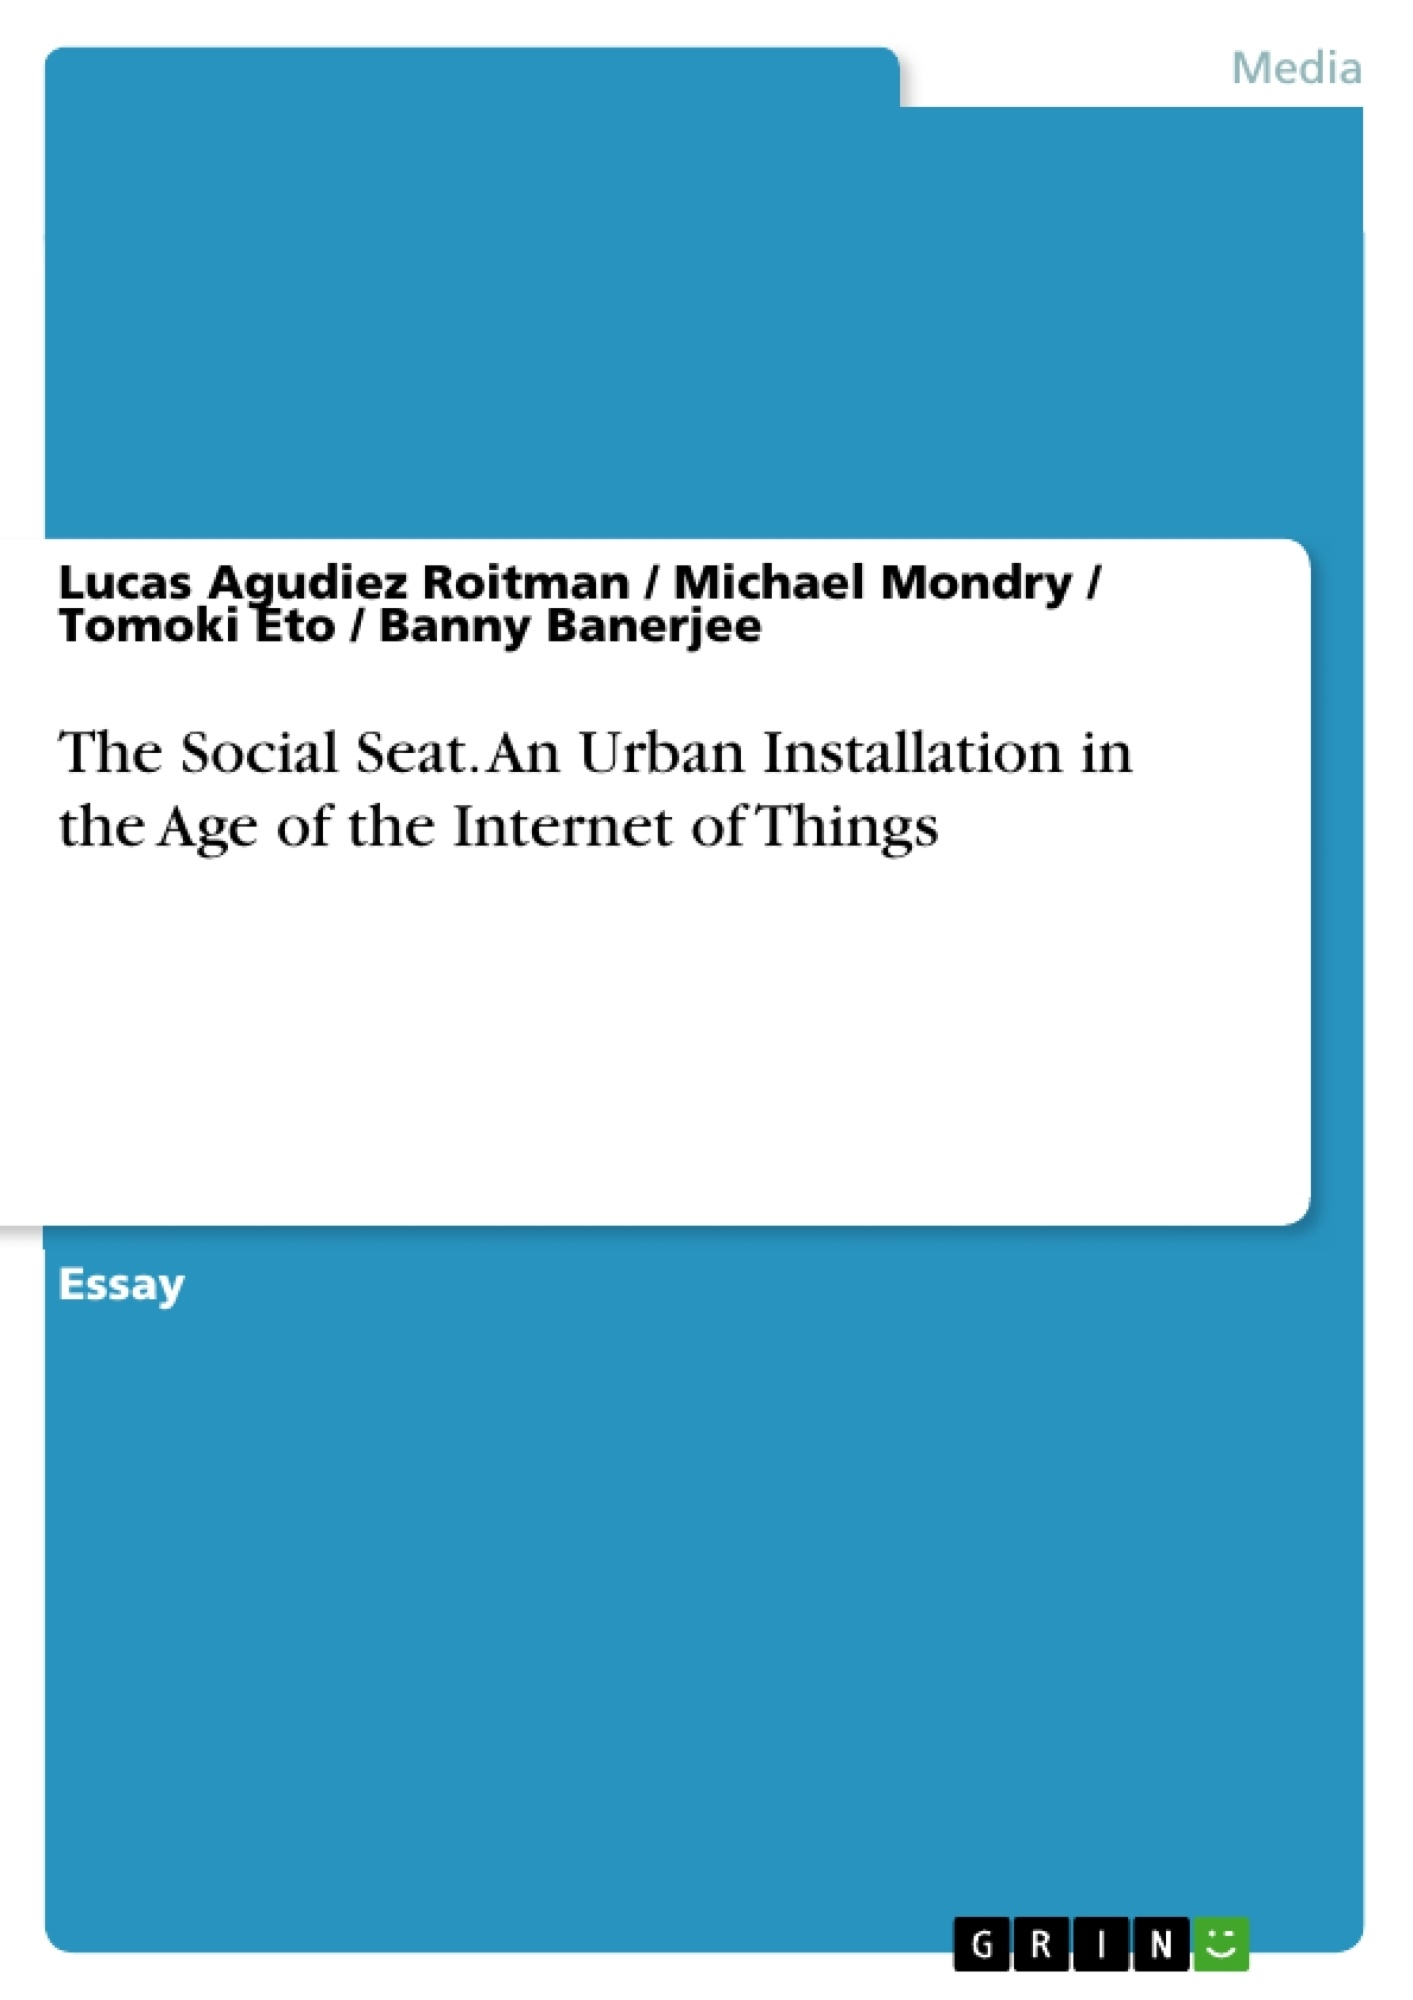 Title: The Social Seat. An Urban Installation in the Age of the Internet of Things